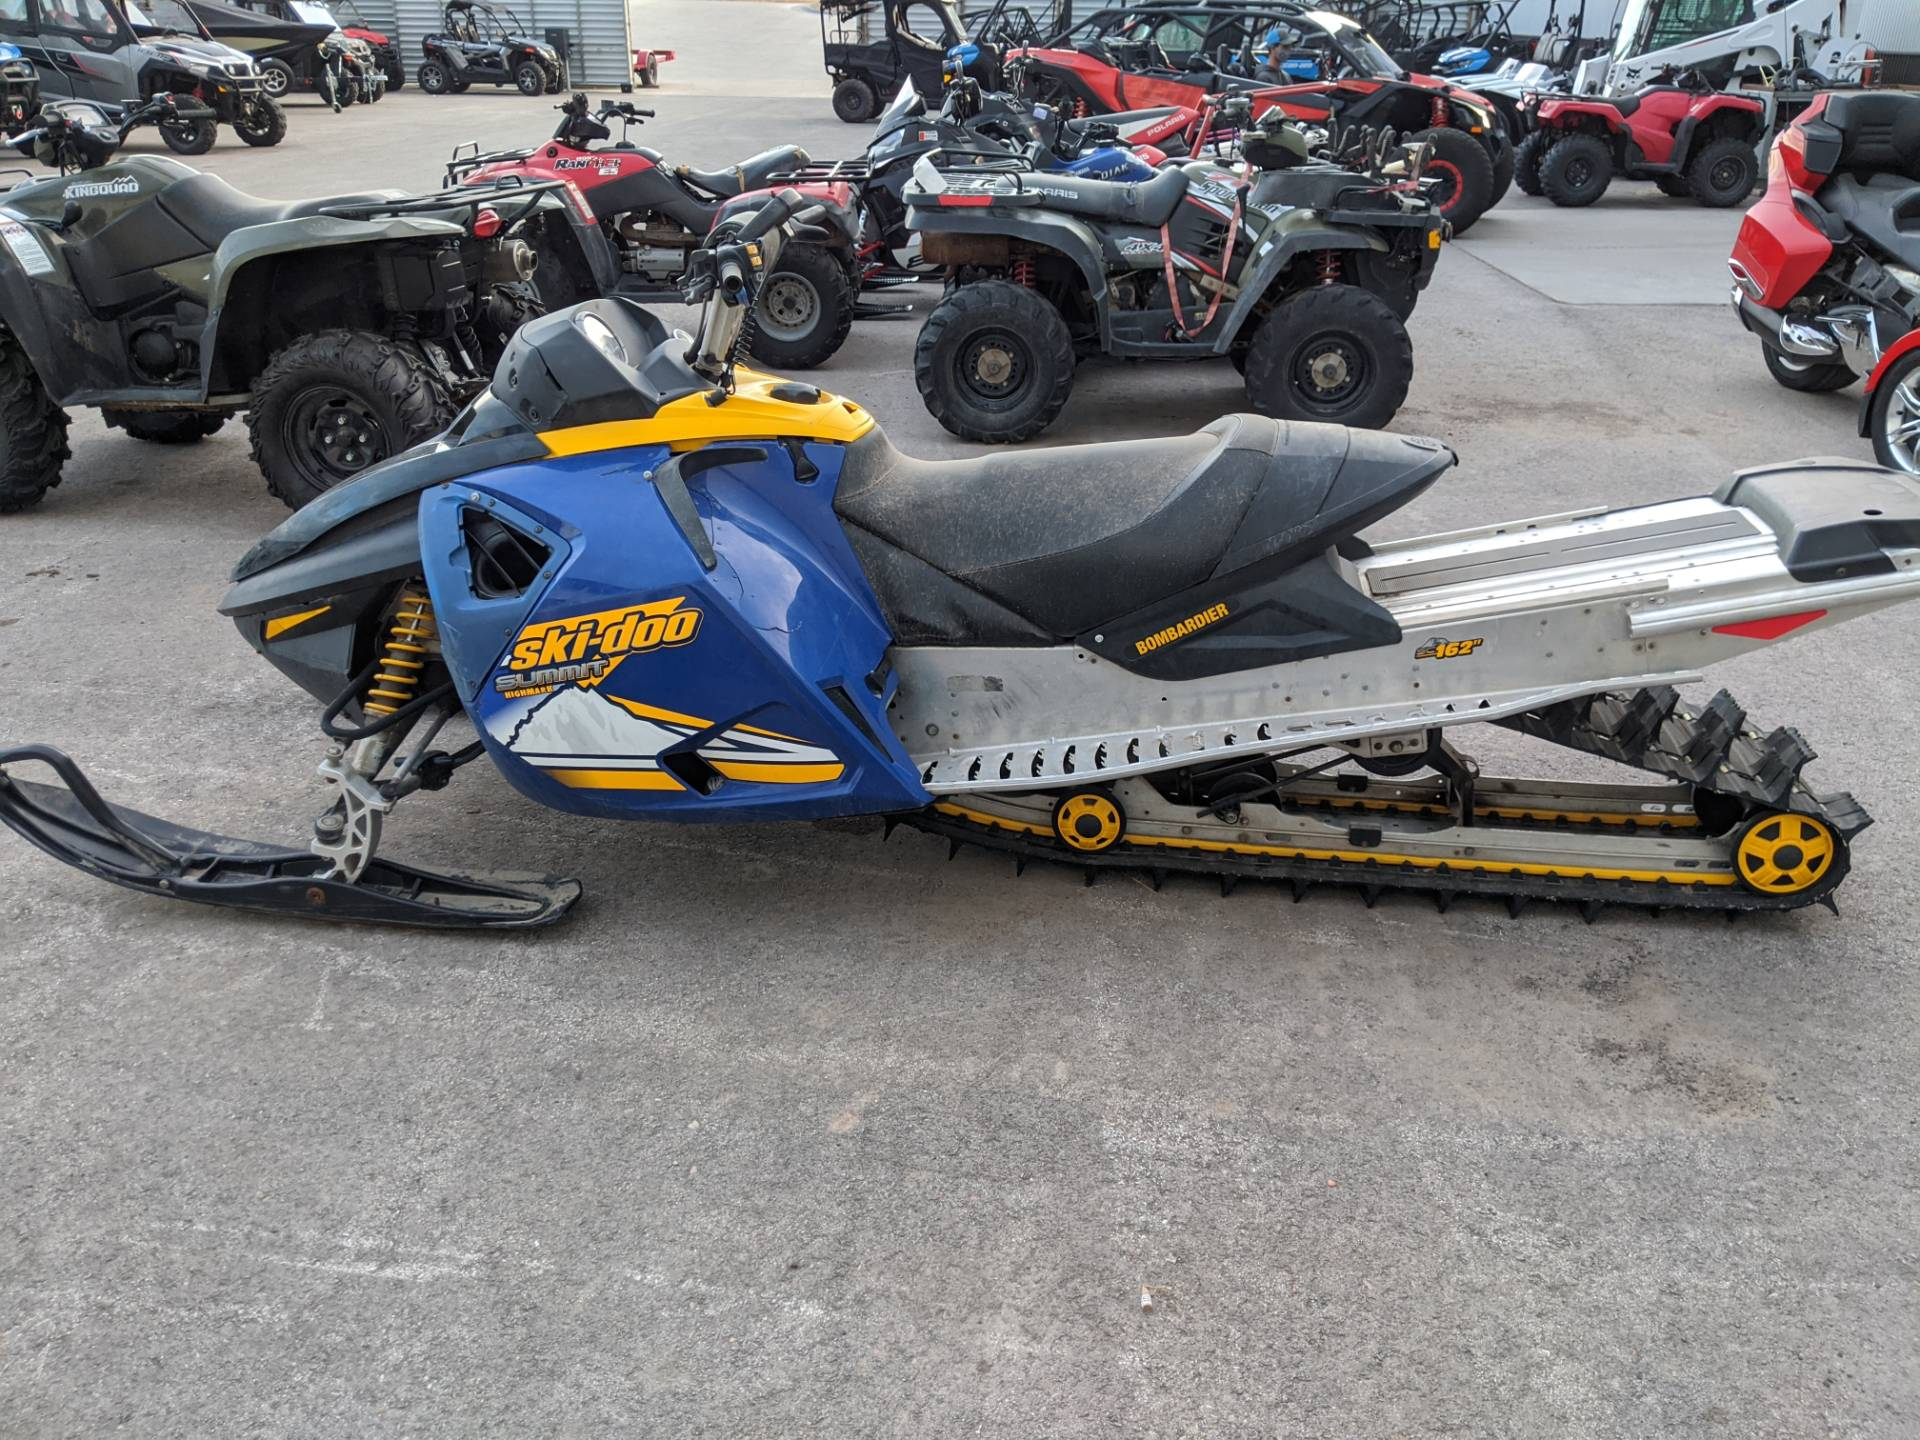 2005 Ski-Doo Summit Highmark 1000 X in Rapid City, South Dakota - Photo 5